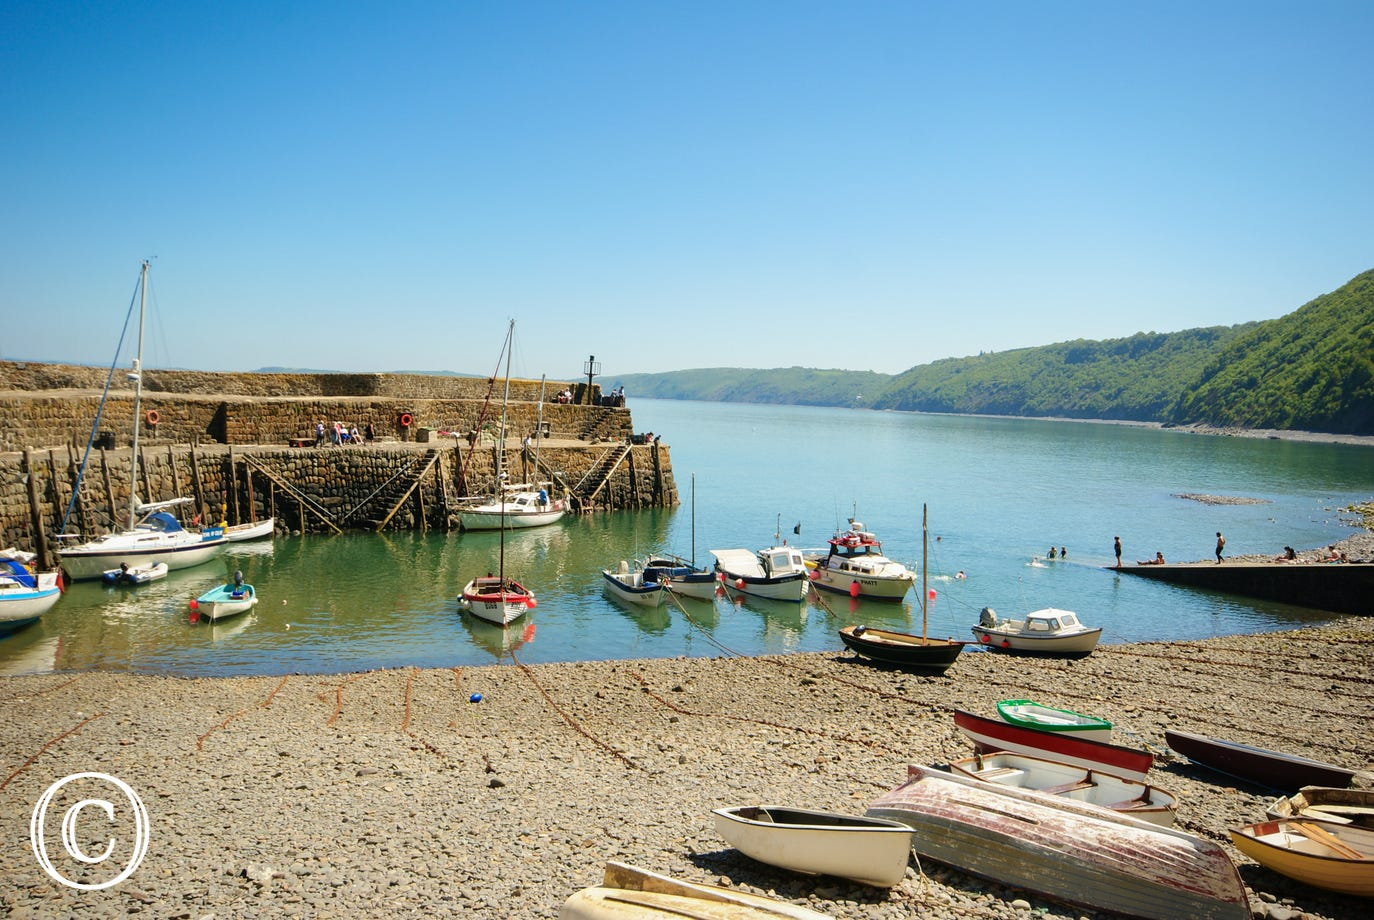 The beautiful historic fishing village of Clovelly is a short drive away and well worth a visit